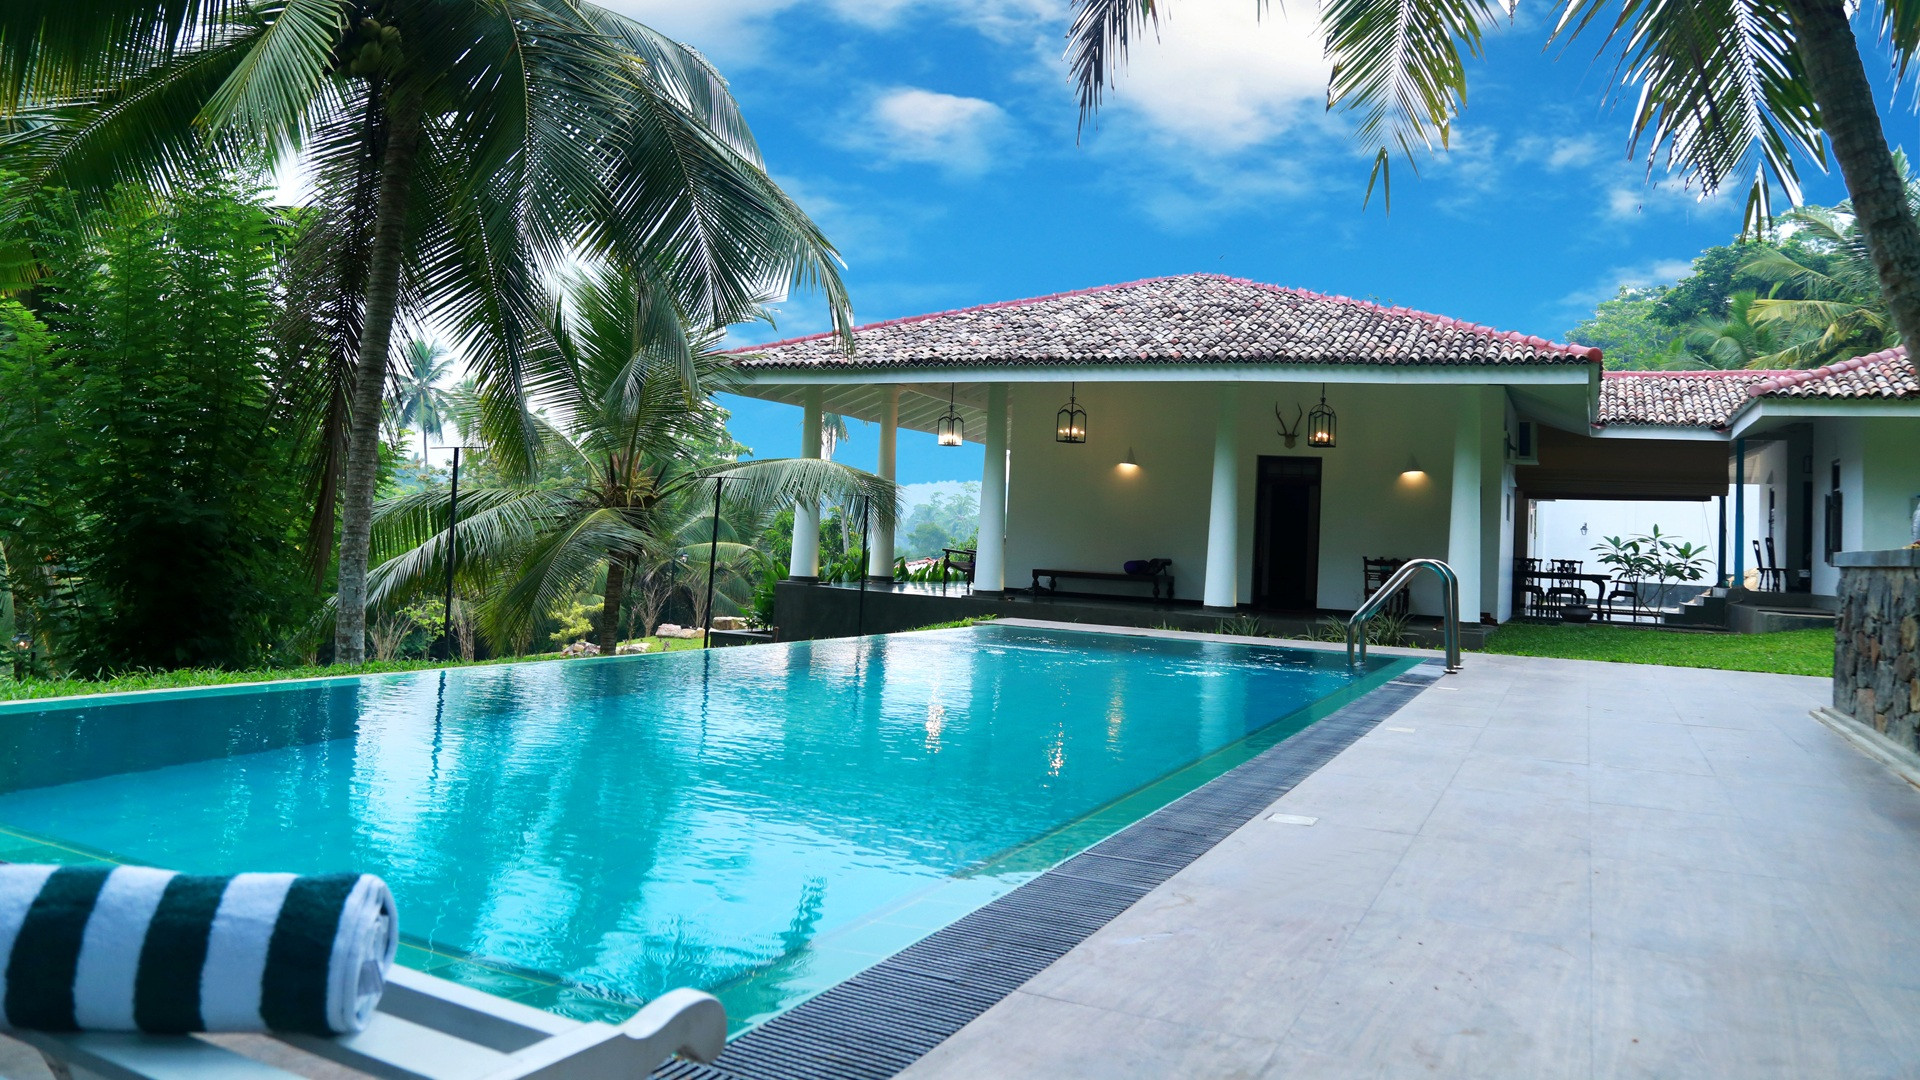 The BR Pool & Spa Inspection